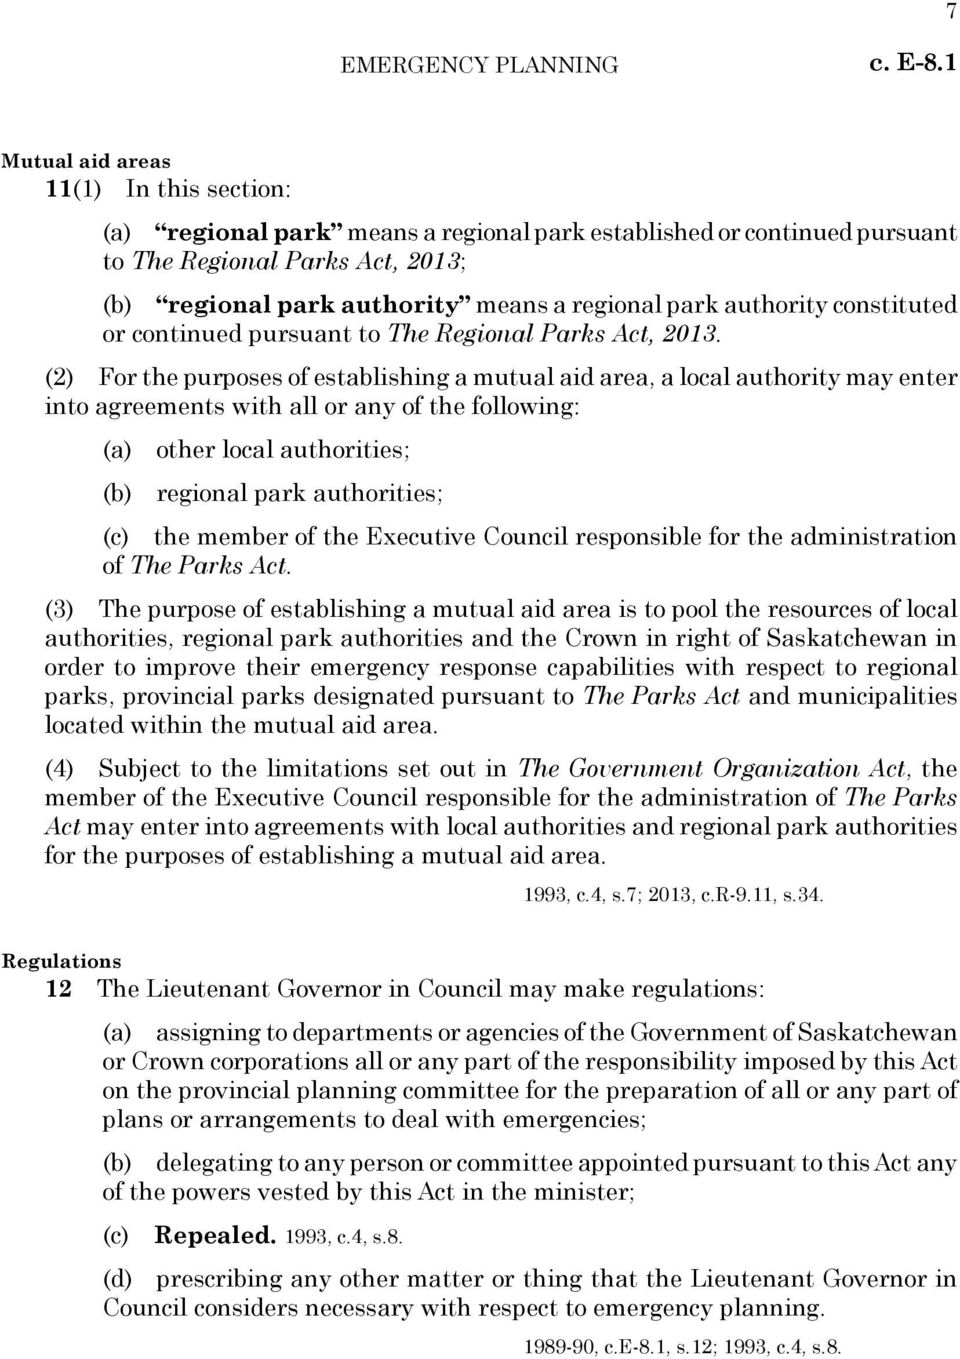 authority constituted or continued pursuant to The Regional Parks Act, 2013.